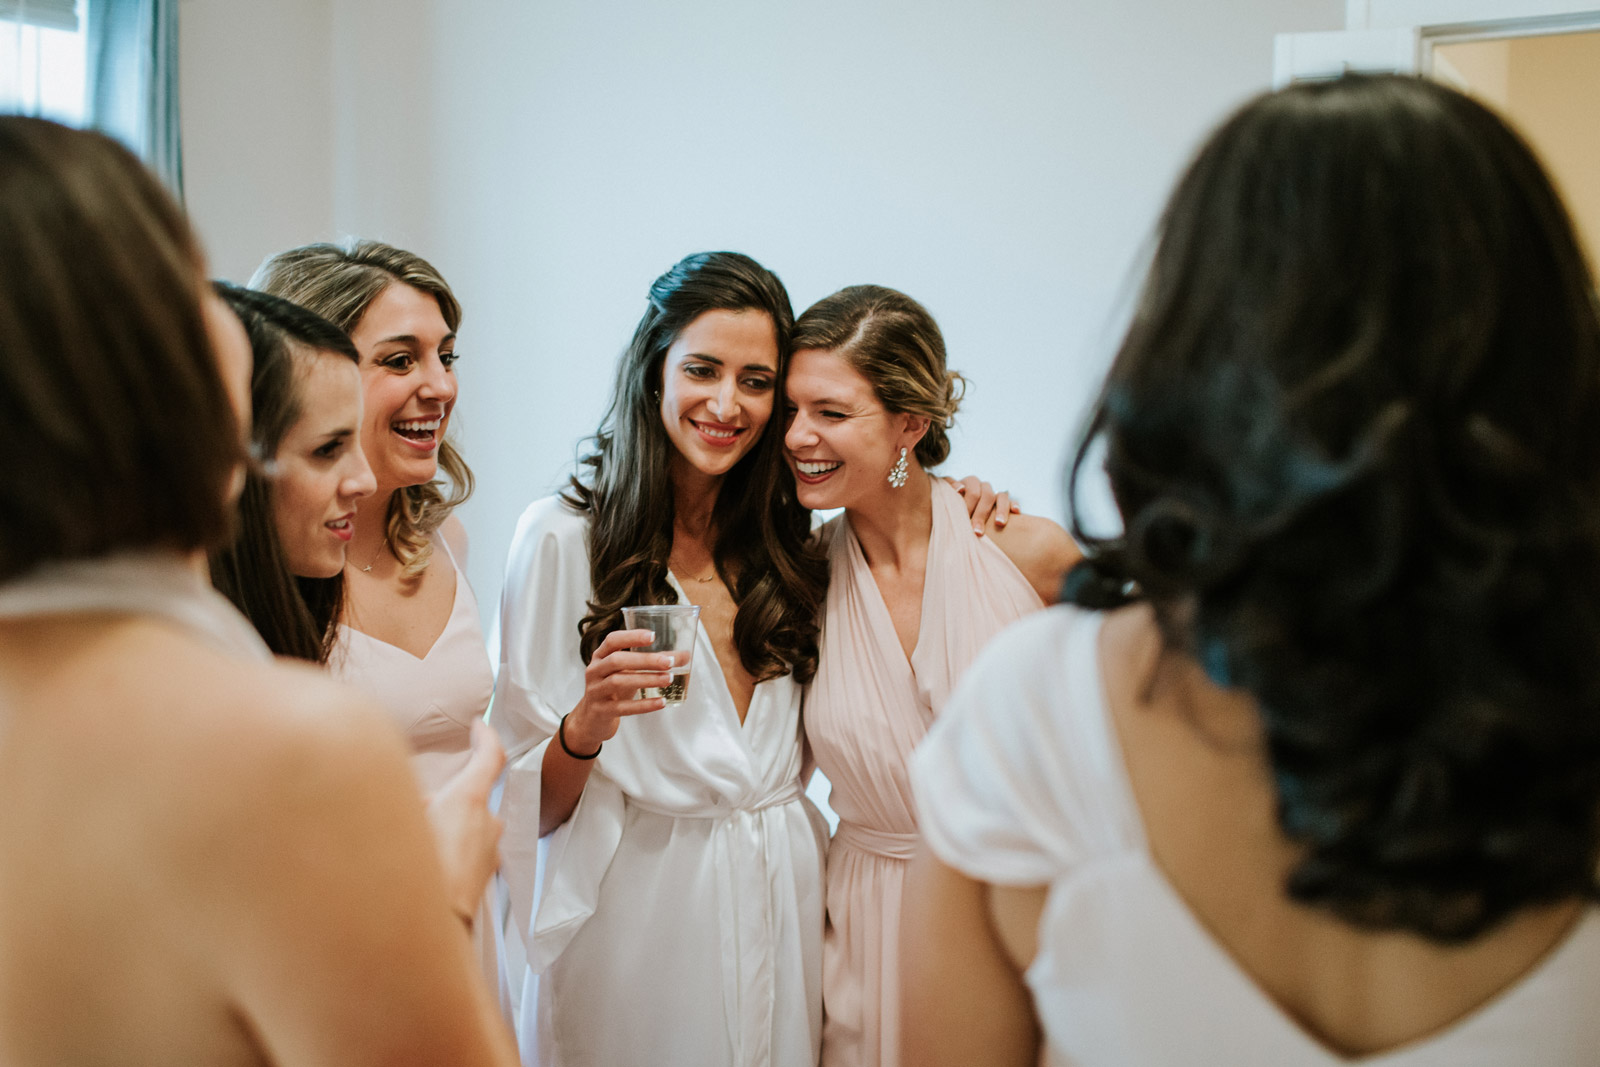 photo of the bride and her bridesmaids captured by Mark Trela Photography in Chicago